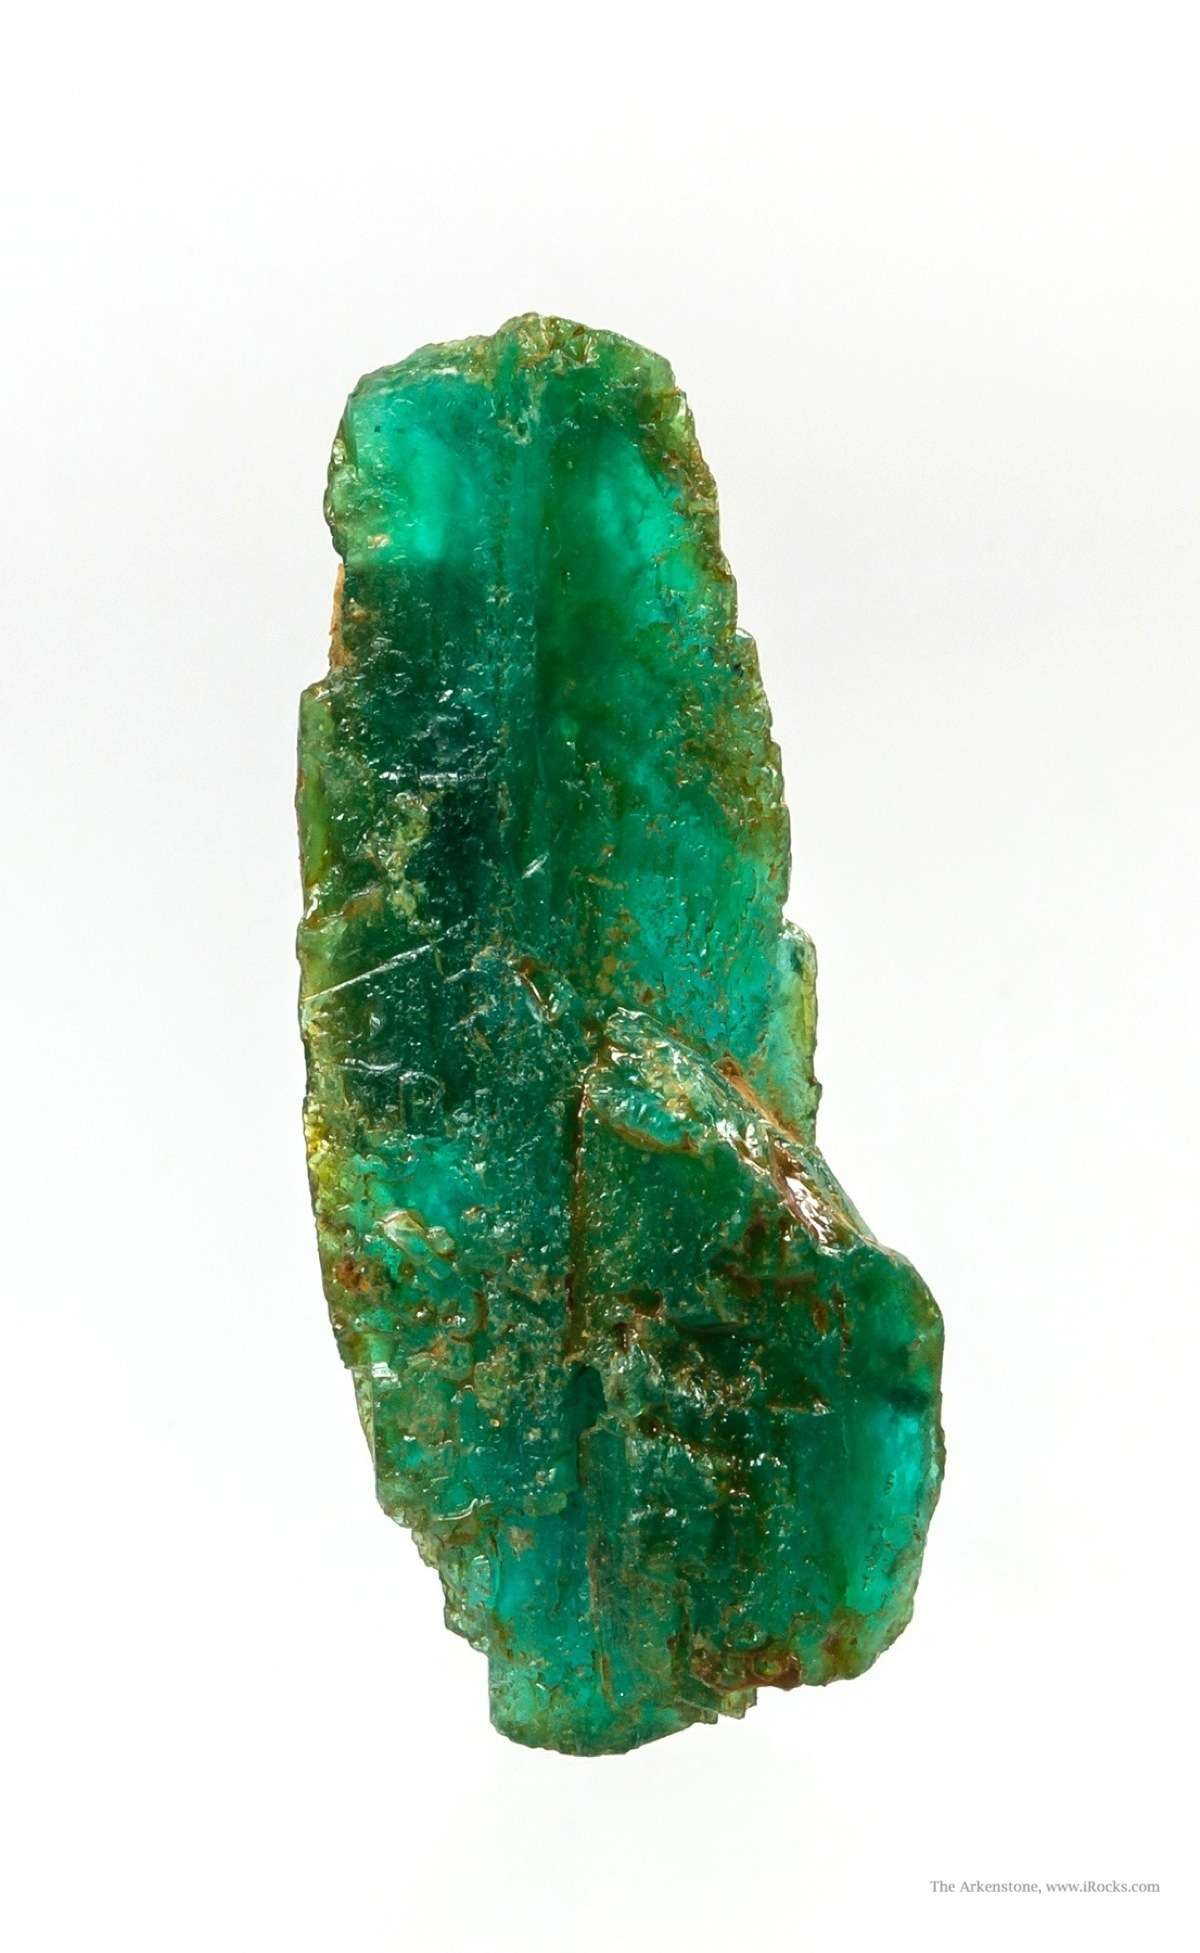 Krohnkite uncommon hydrated sodium copper sulfate good crystals ONLY